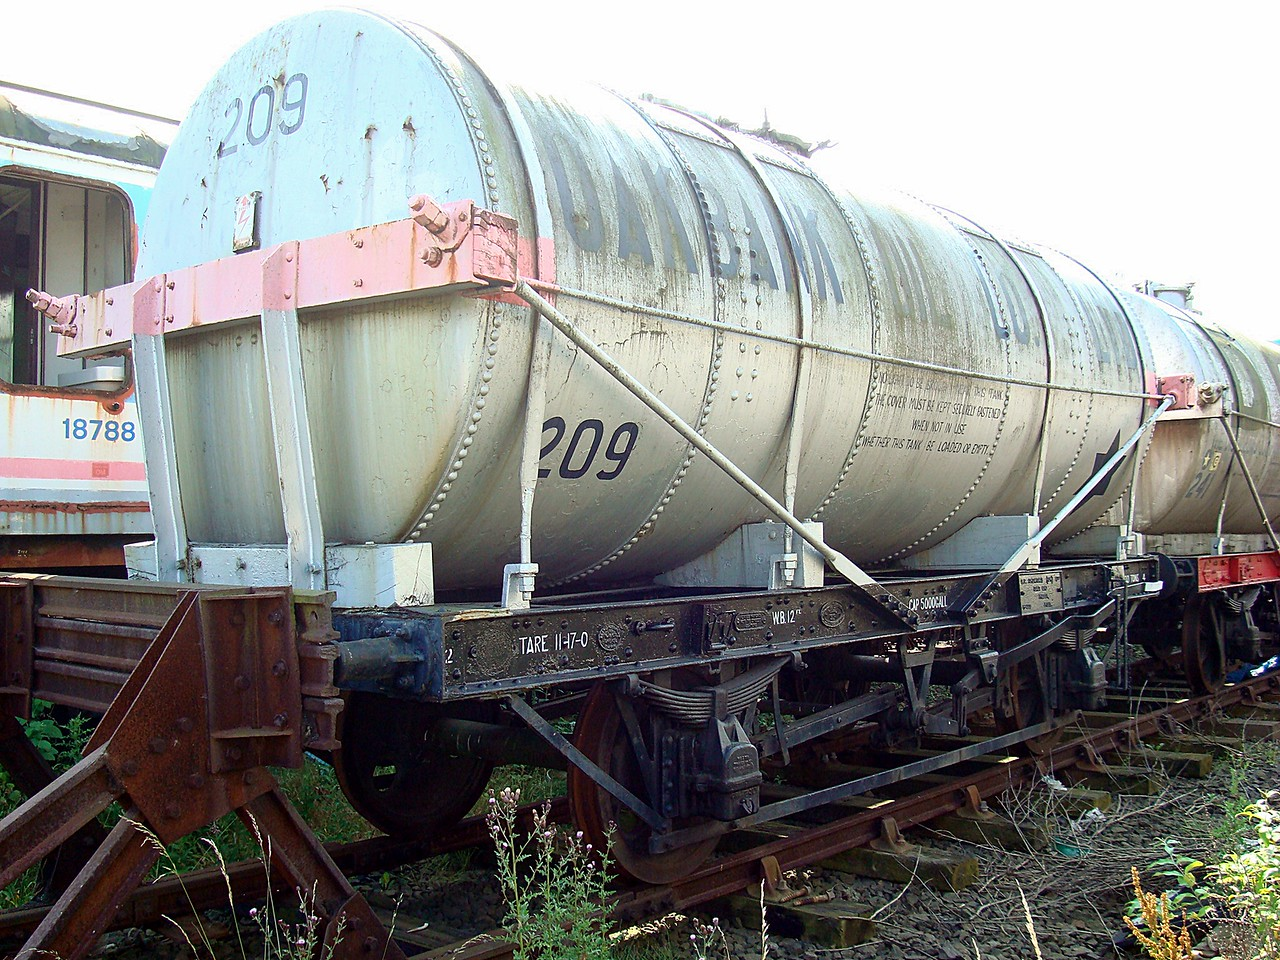 PO 209 Chemical Tank 27,07,2008. (Body Scrapped u,f At Maud Aberdeenshire)